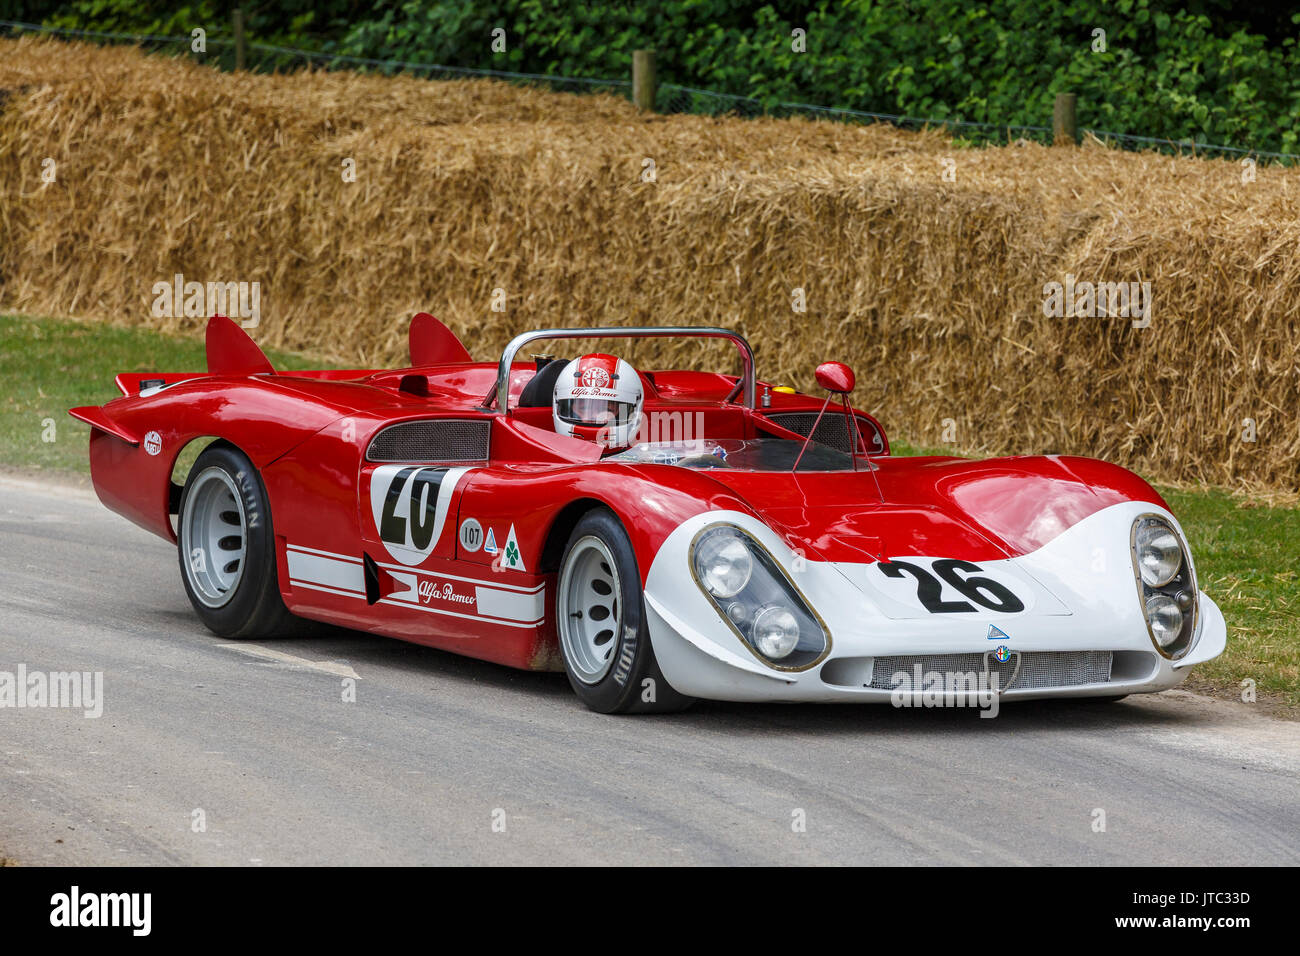 1968 alfa romeo 33 2 le mans endurance racer with driver giuseppe stock photo 152700561 alamy. Black Bedroom Furniture Sets. Home Design Ideas